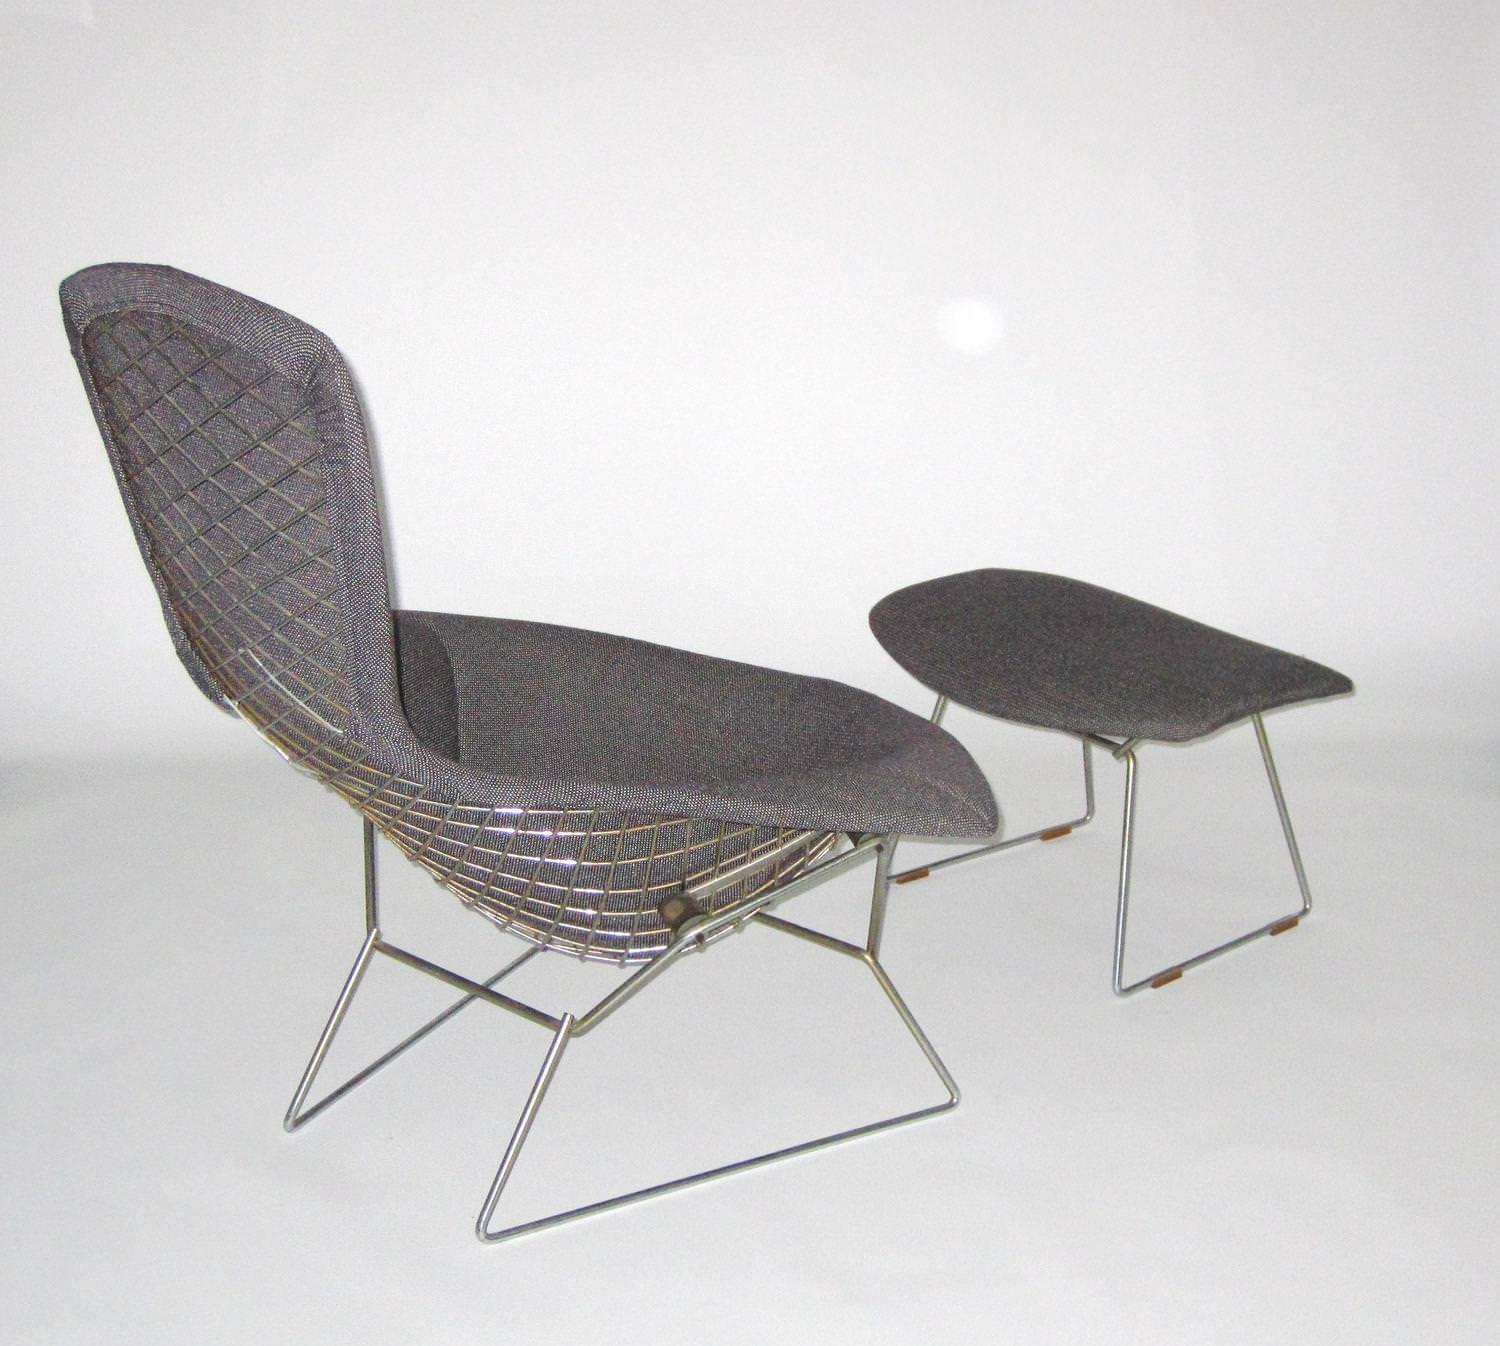 Image of: Bertoia Chair Parts